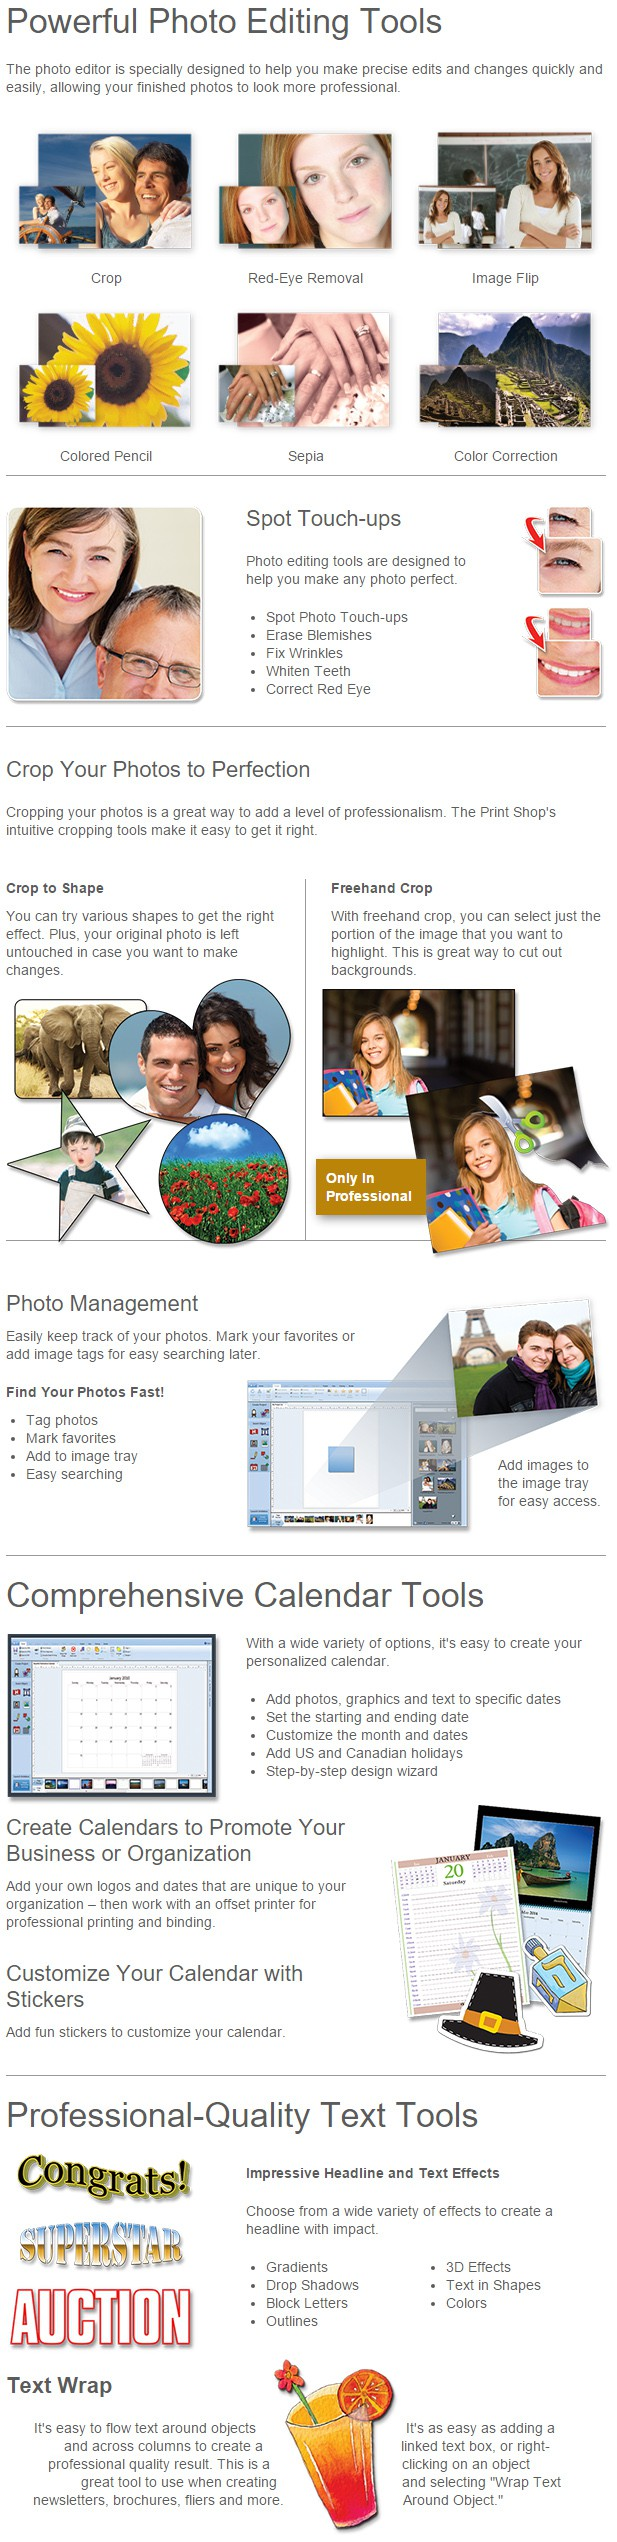 The Print Shop Professional Photo Editing Feature